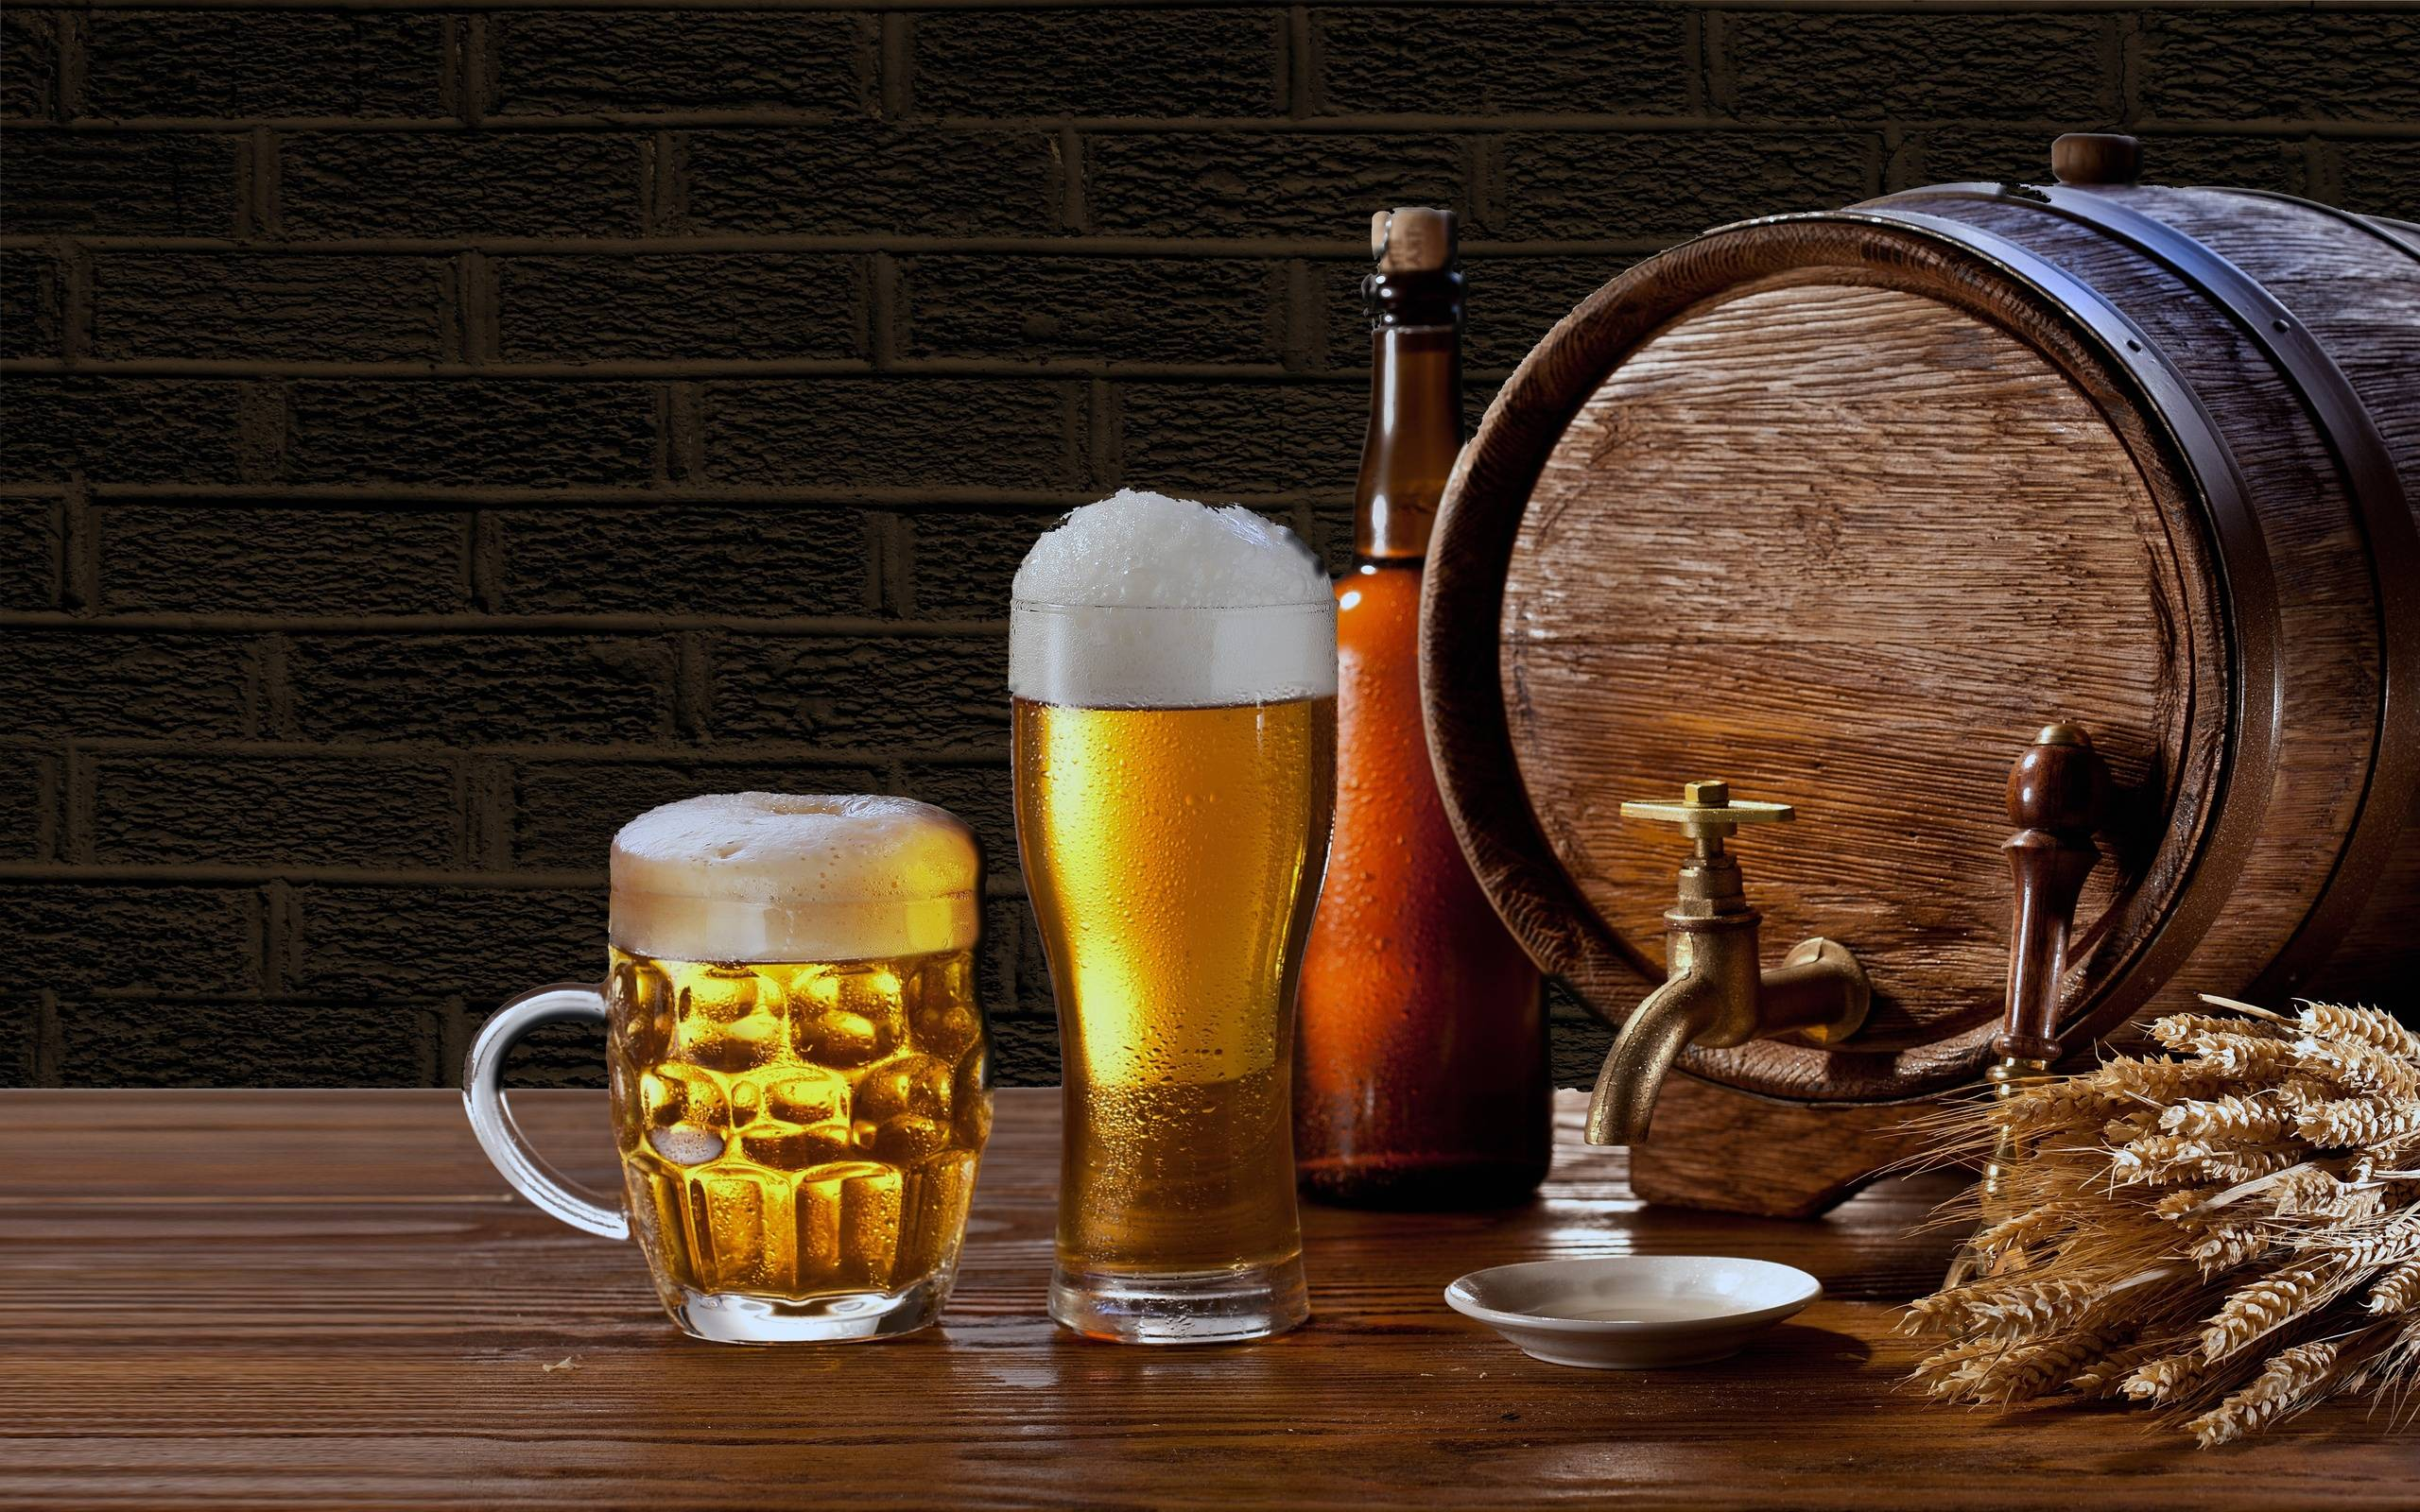 Global Craft Beer Market Study by Product Type, by Distribution, by Region, Size, Share, Trends, Business Strategy, Growth, Future Opportunities and Forecast, 2014-2025